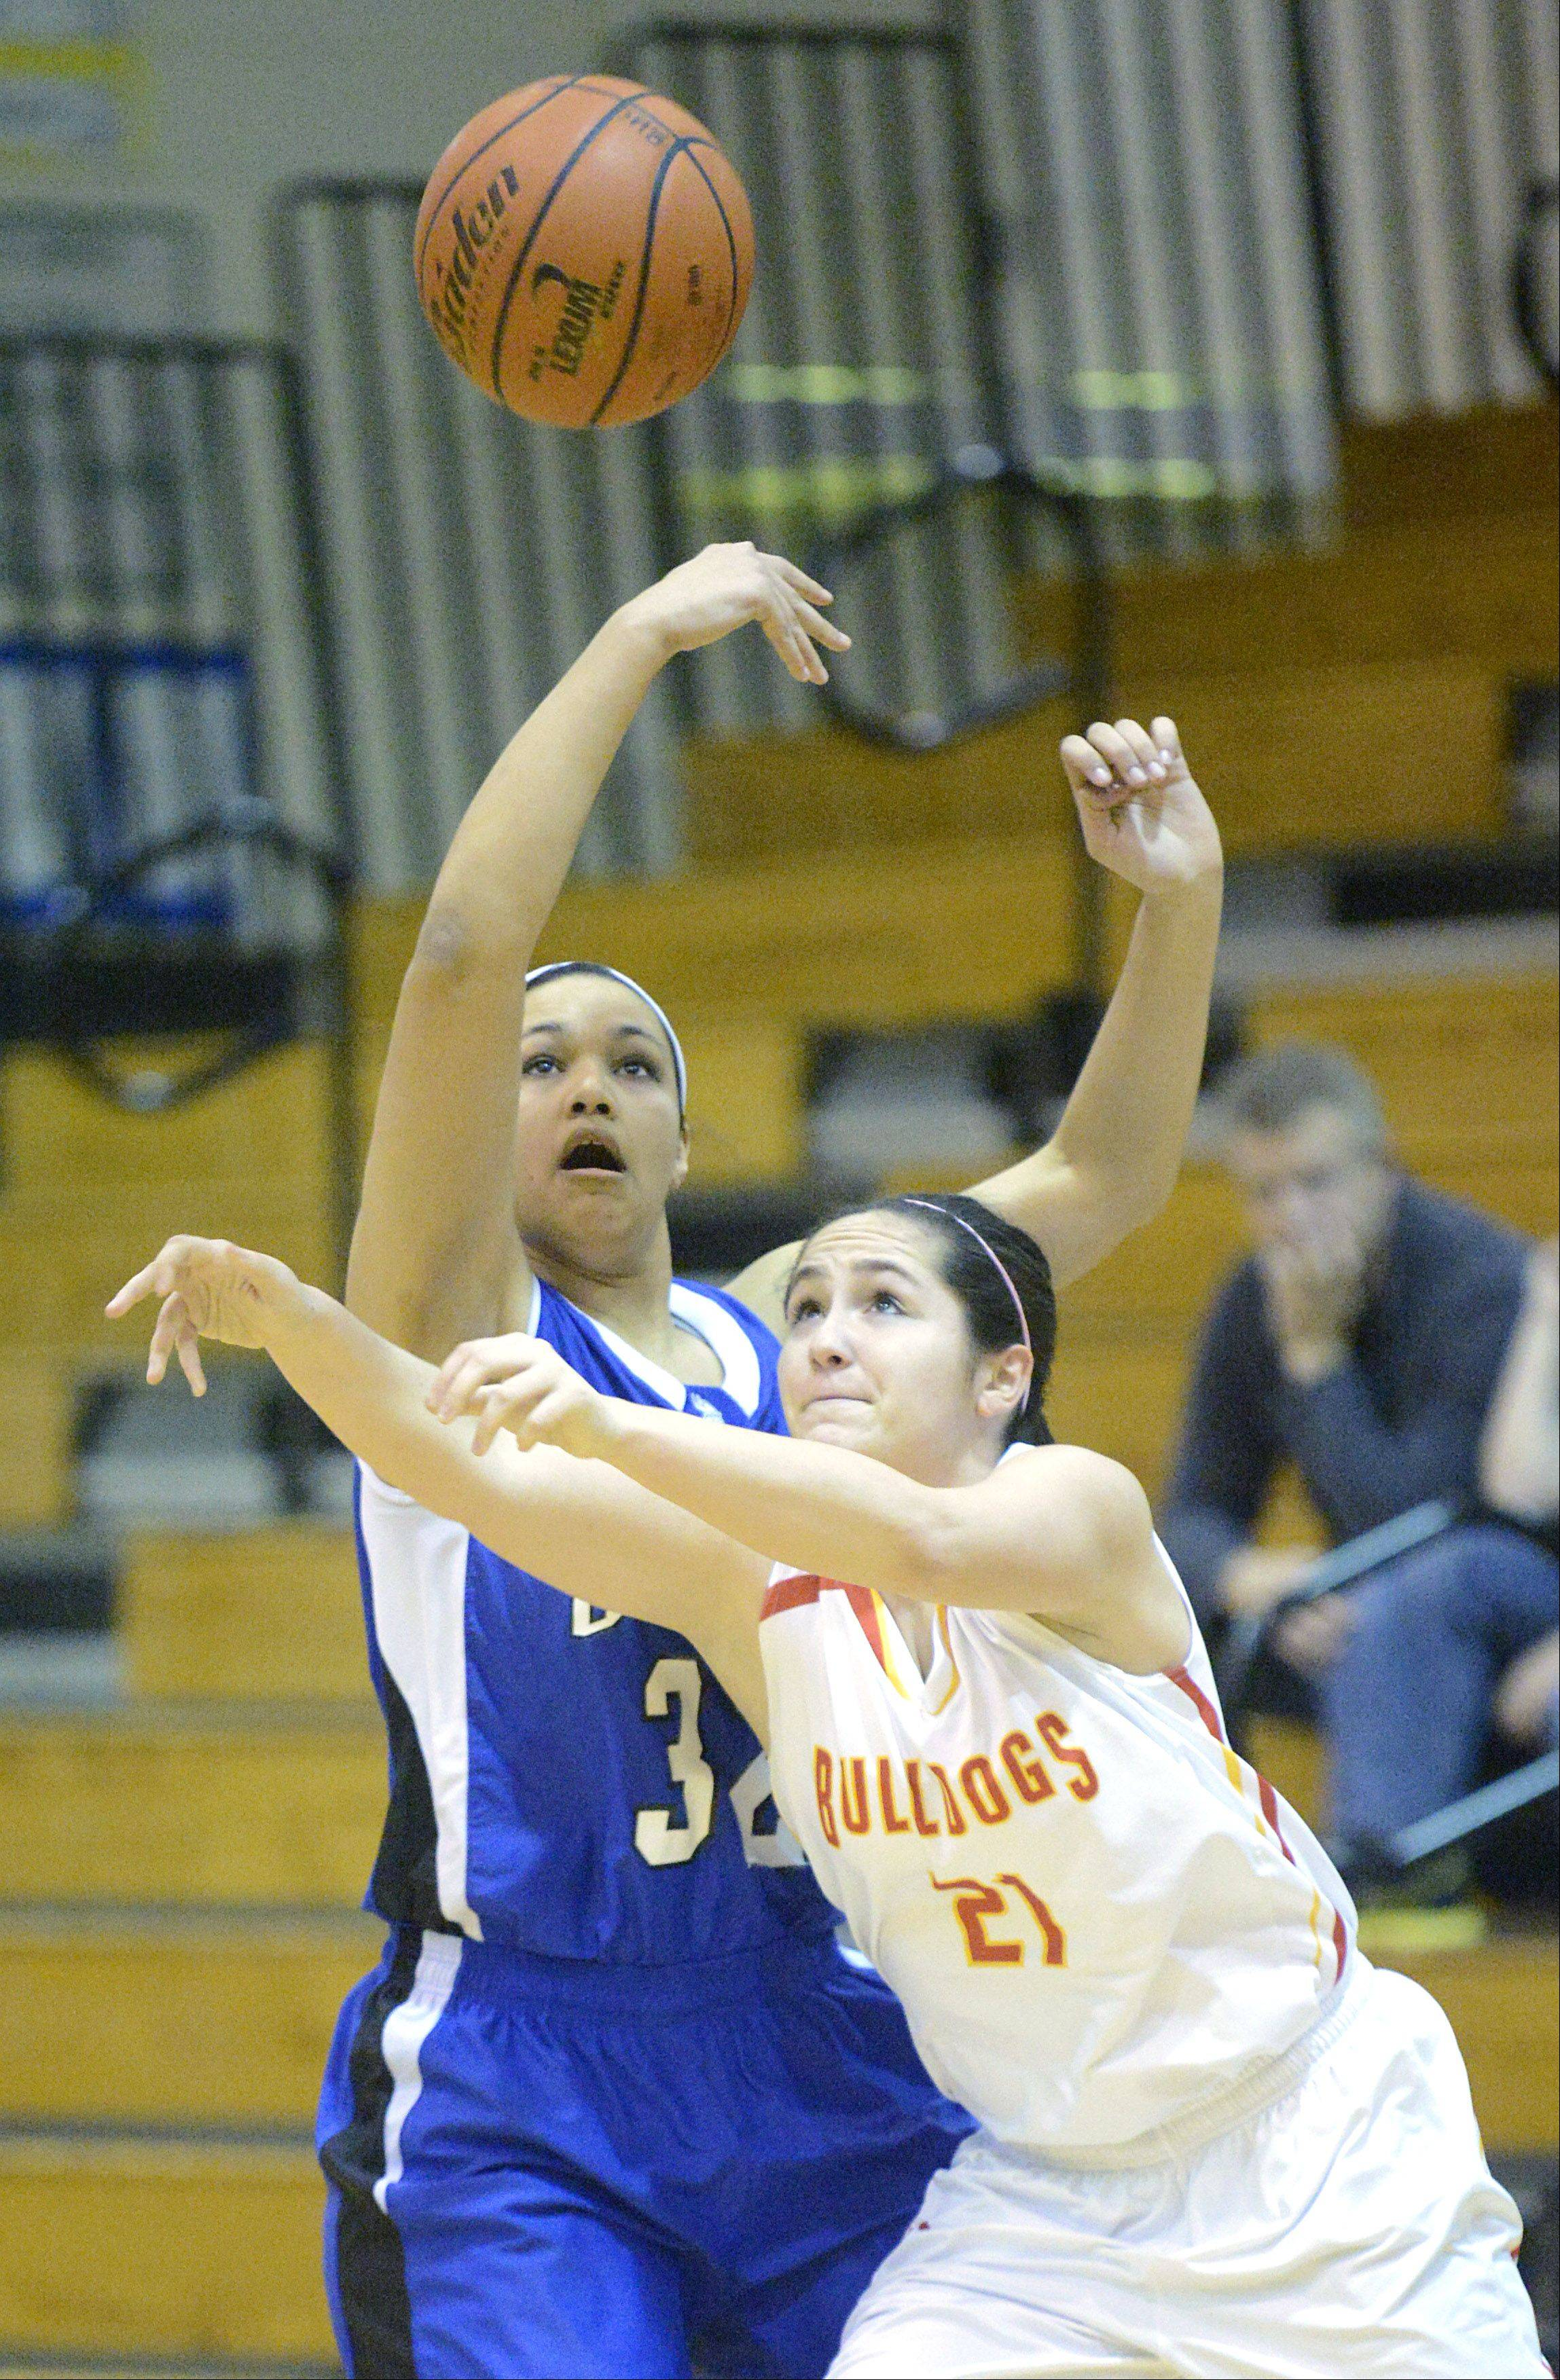 Geneva's Sidney Santos knocks the ball upwards and out of the grasp of Batavia's Sami Villarreal in the first quarter.